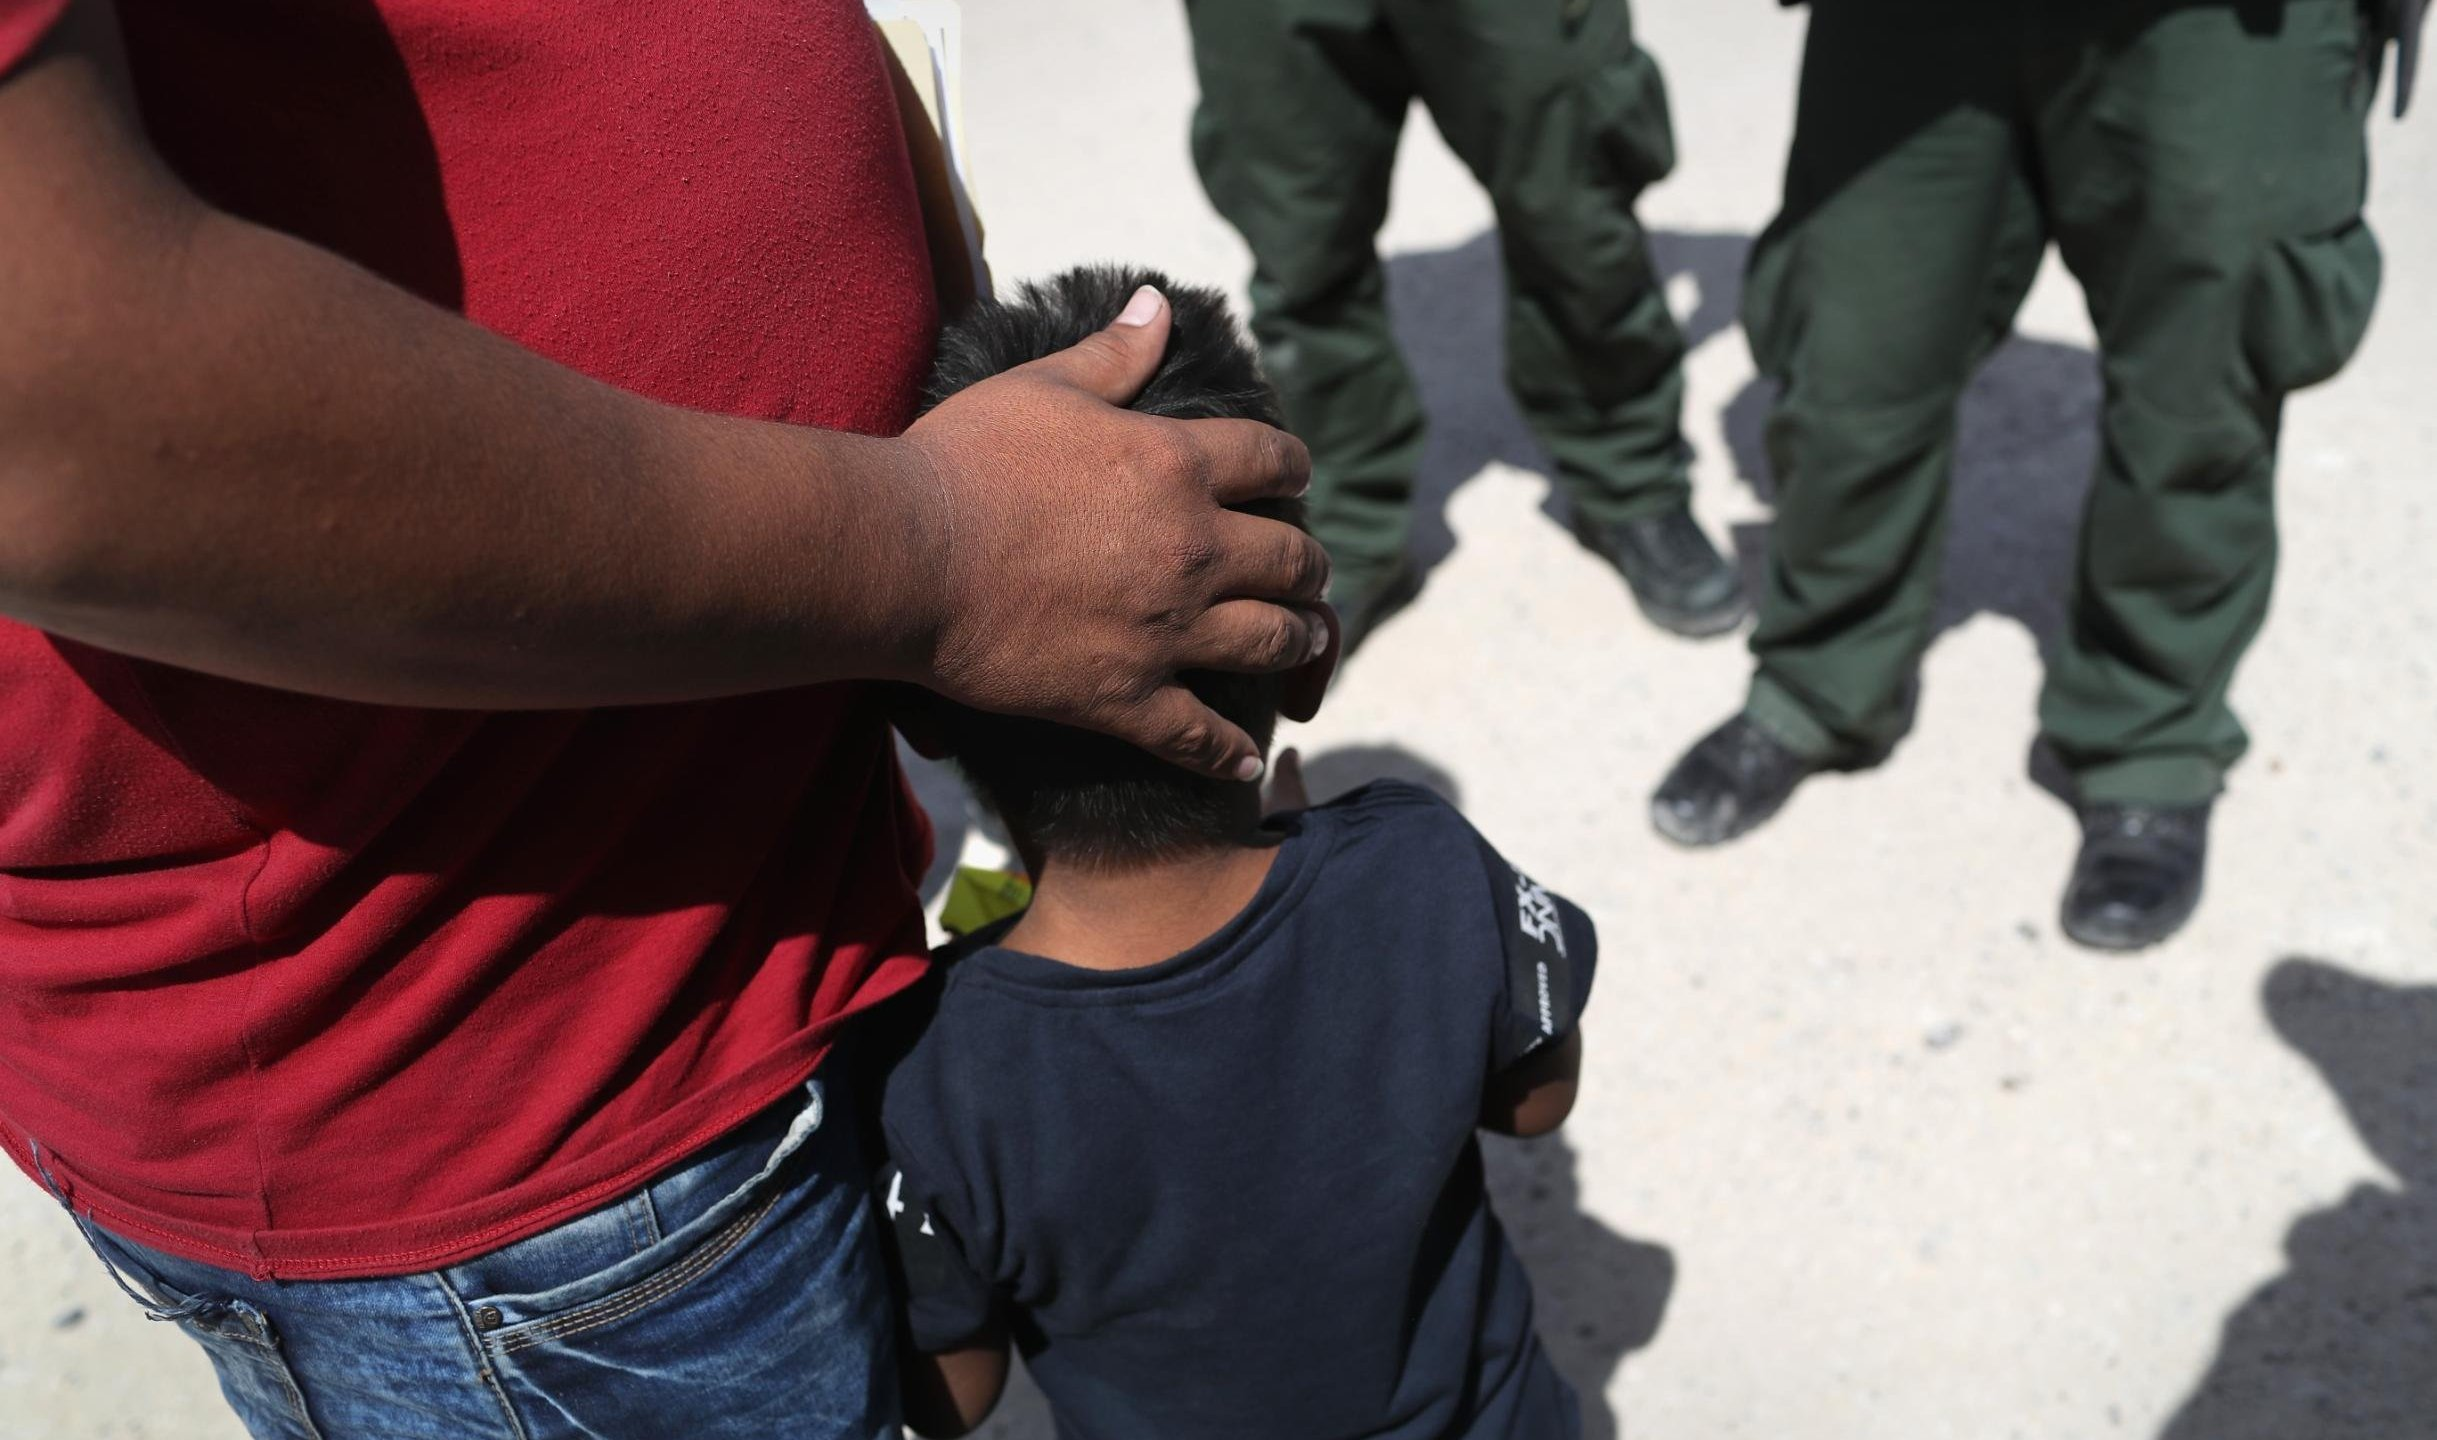 A record number of unaccompanied immigrant children, about 14,000, are currently in US custody, a Health and Human Services spokesman said. (Credit: John Moore/Getty Images)